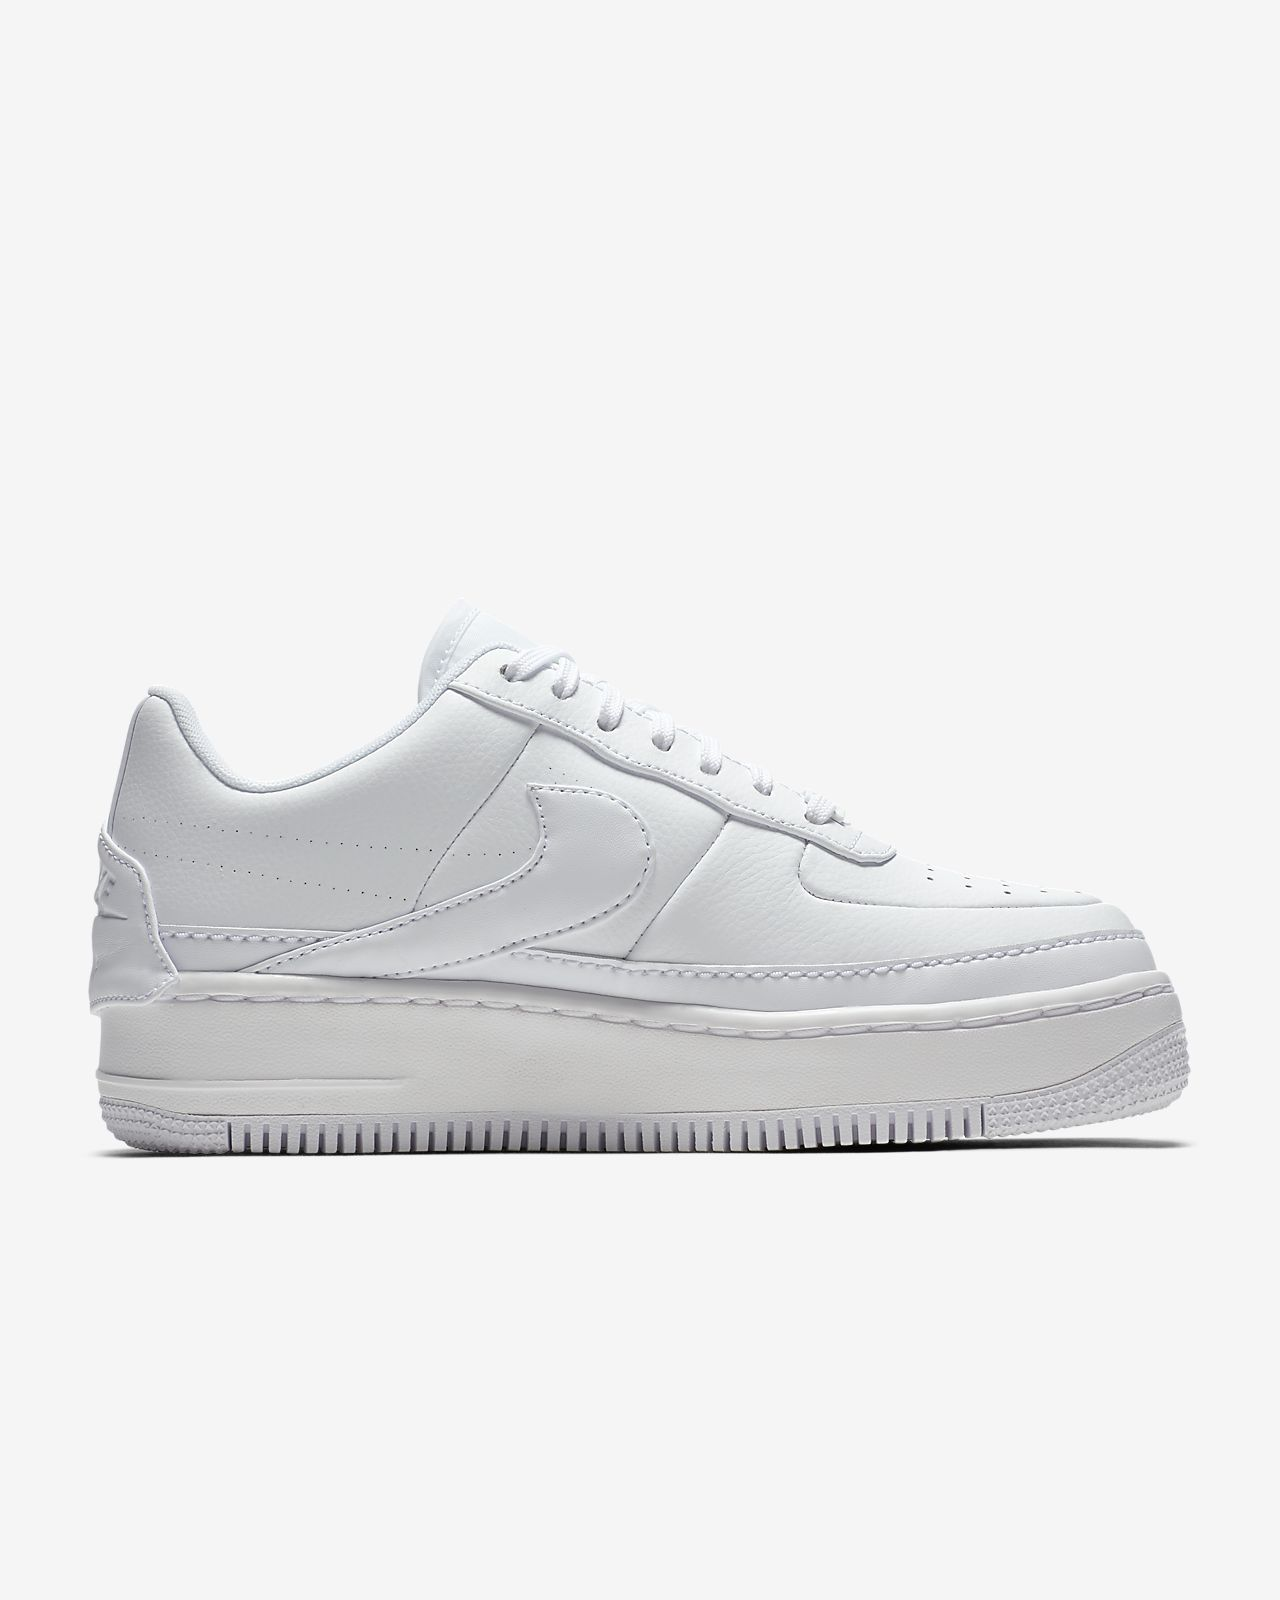 discount online here best deals on Nike Air Force 1 Jester XX Schuh